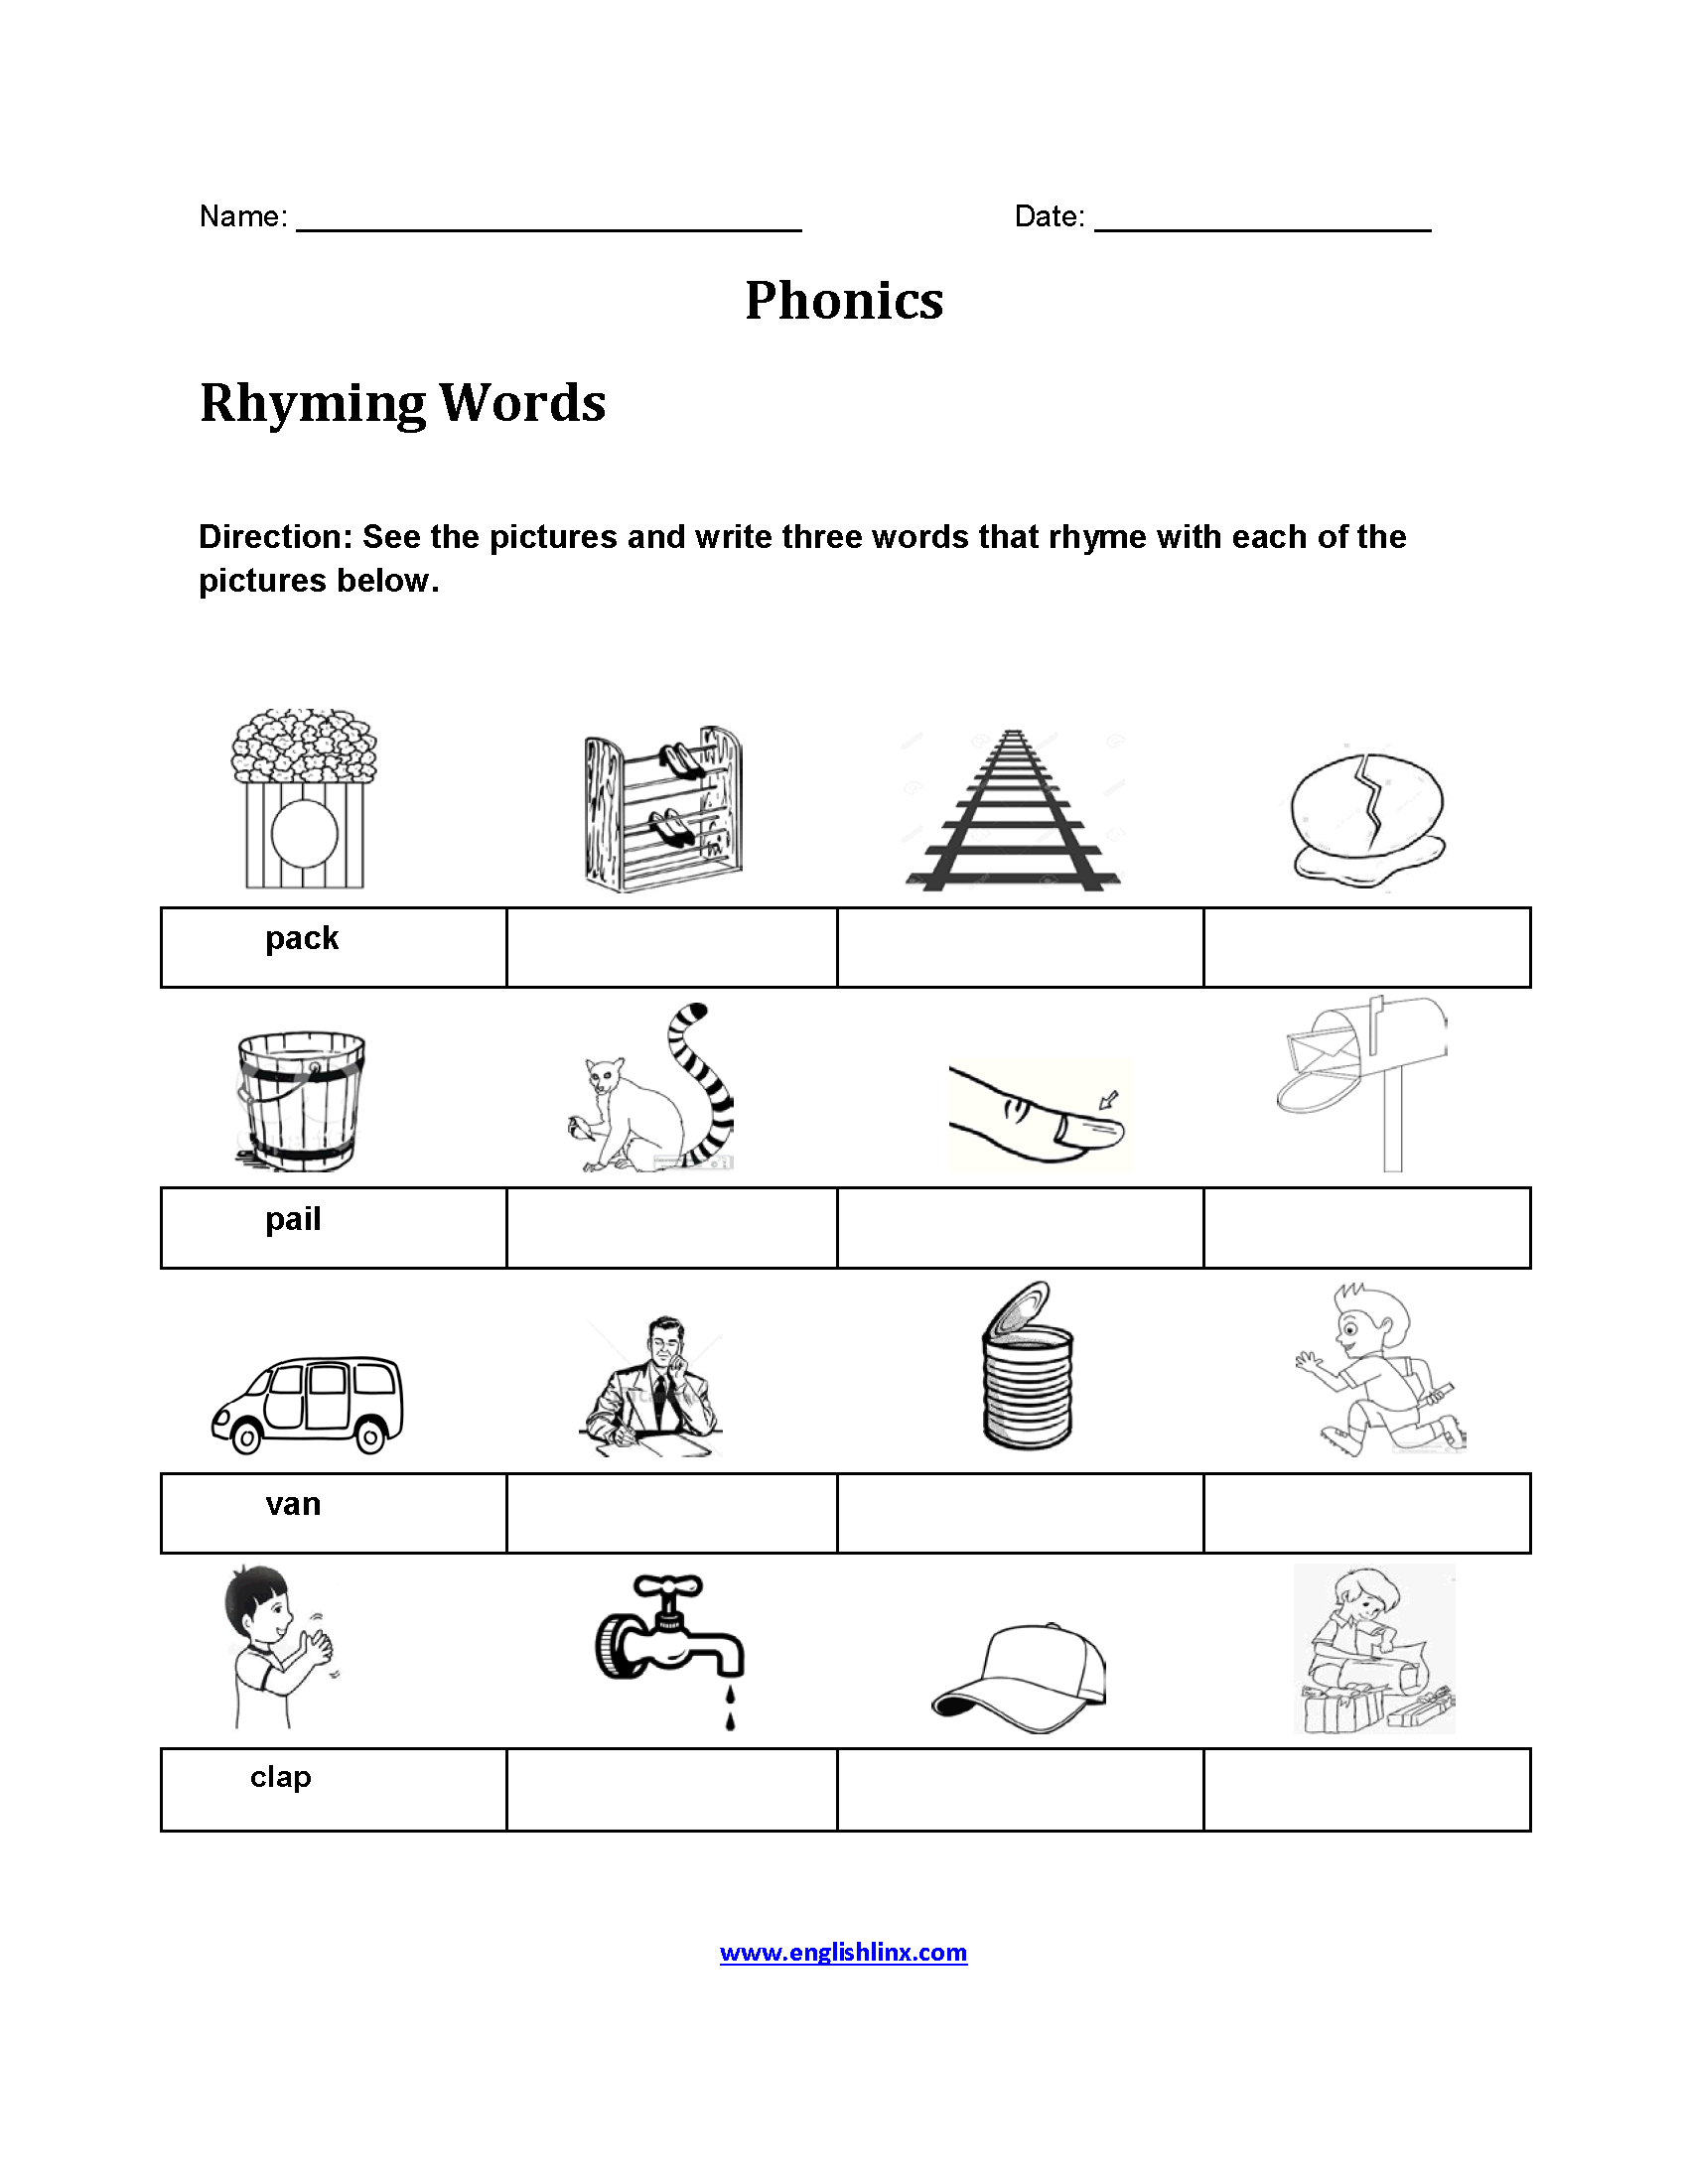 Rhyming Words Pictures Phonics Worksheets